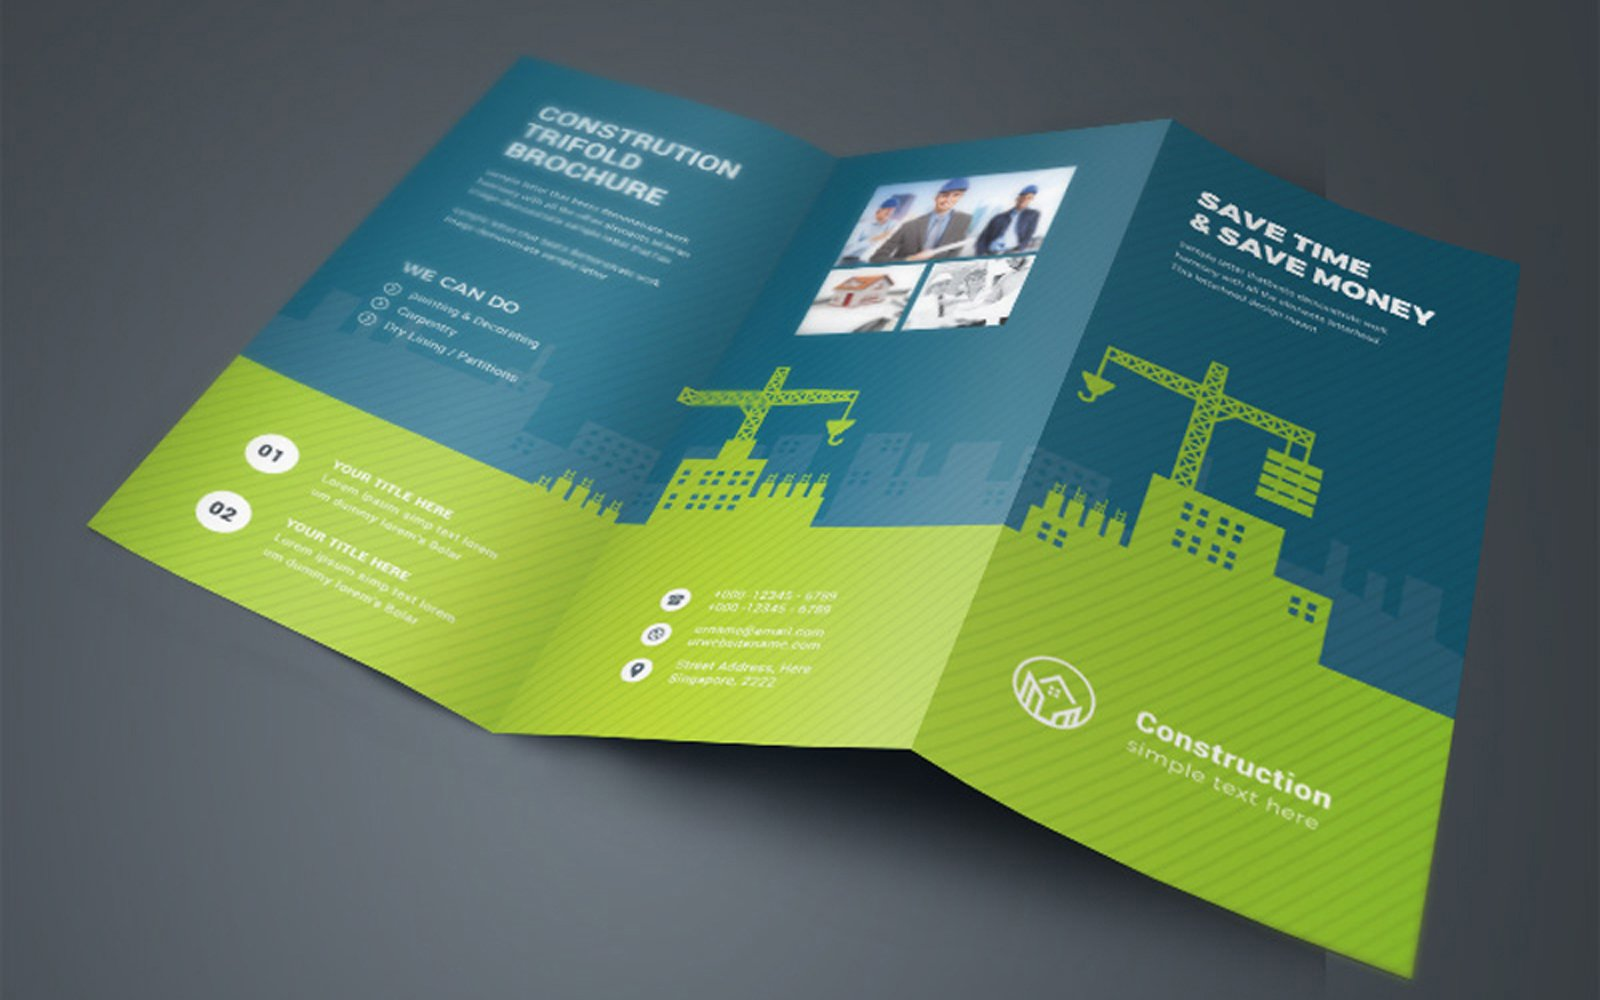 Construction TriFold Brochure Corporate Identity Template